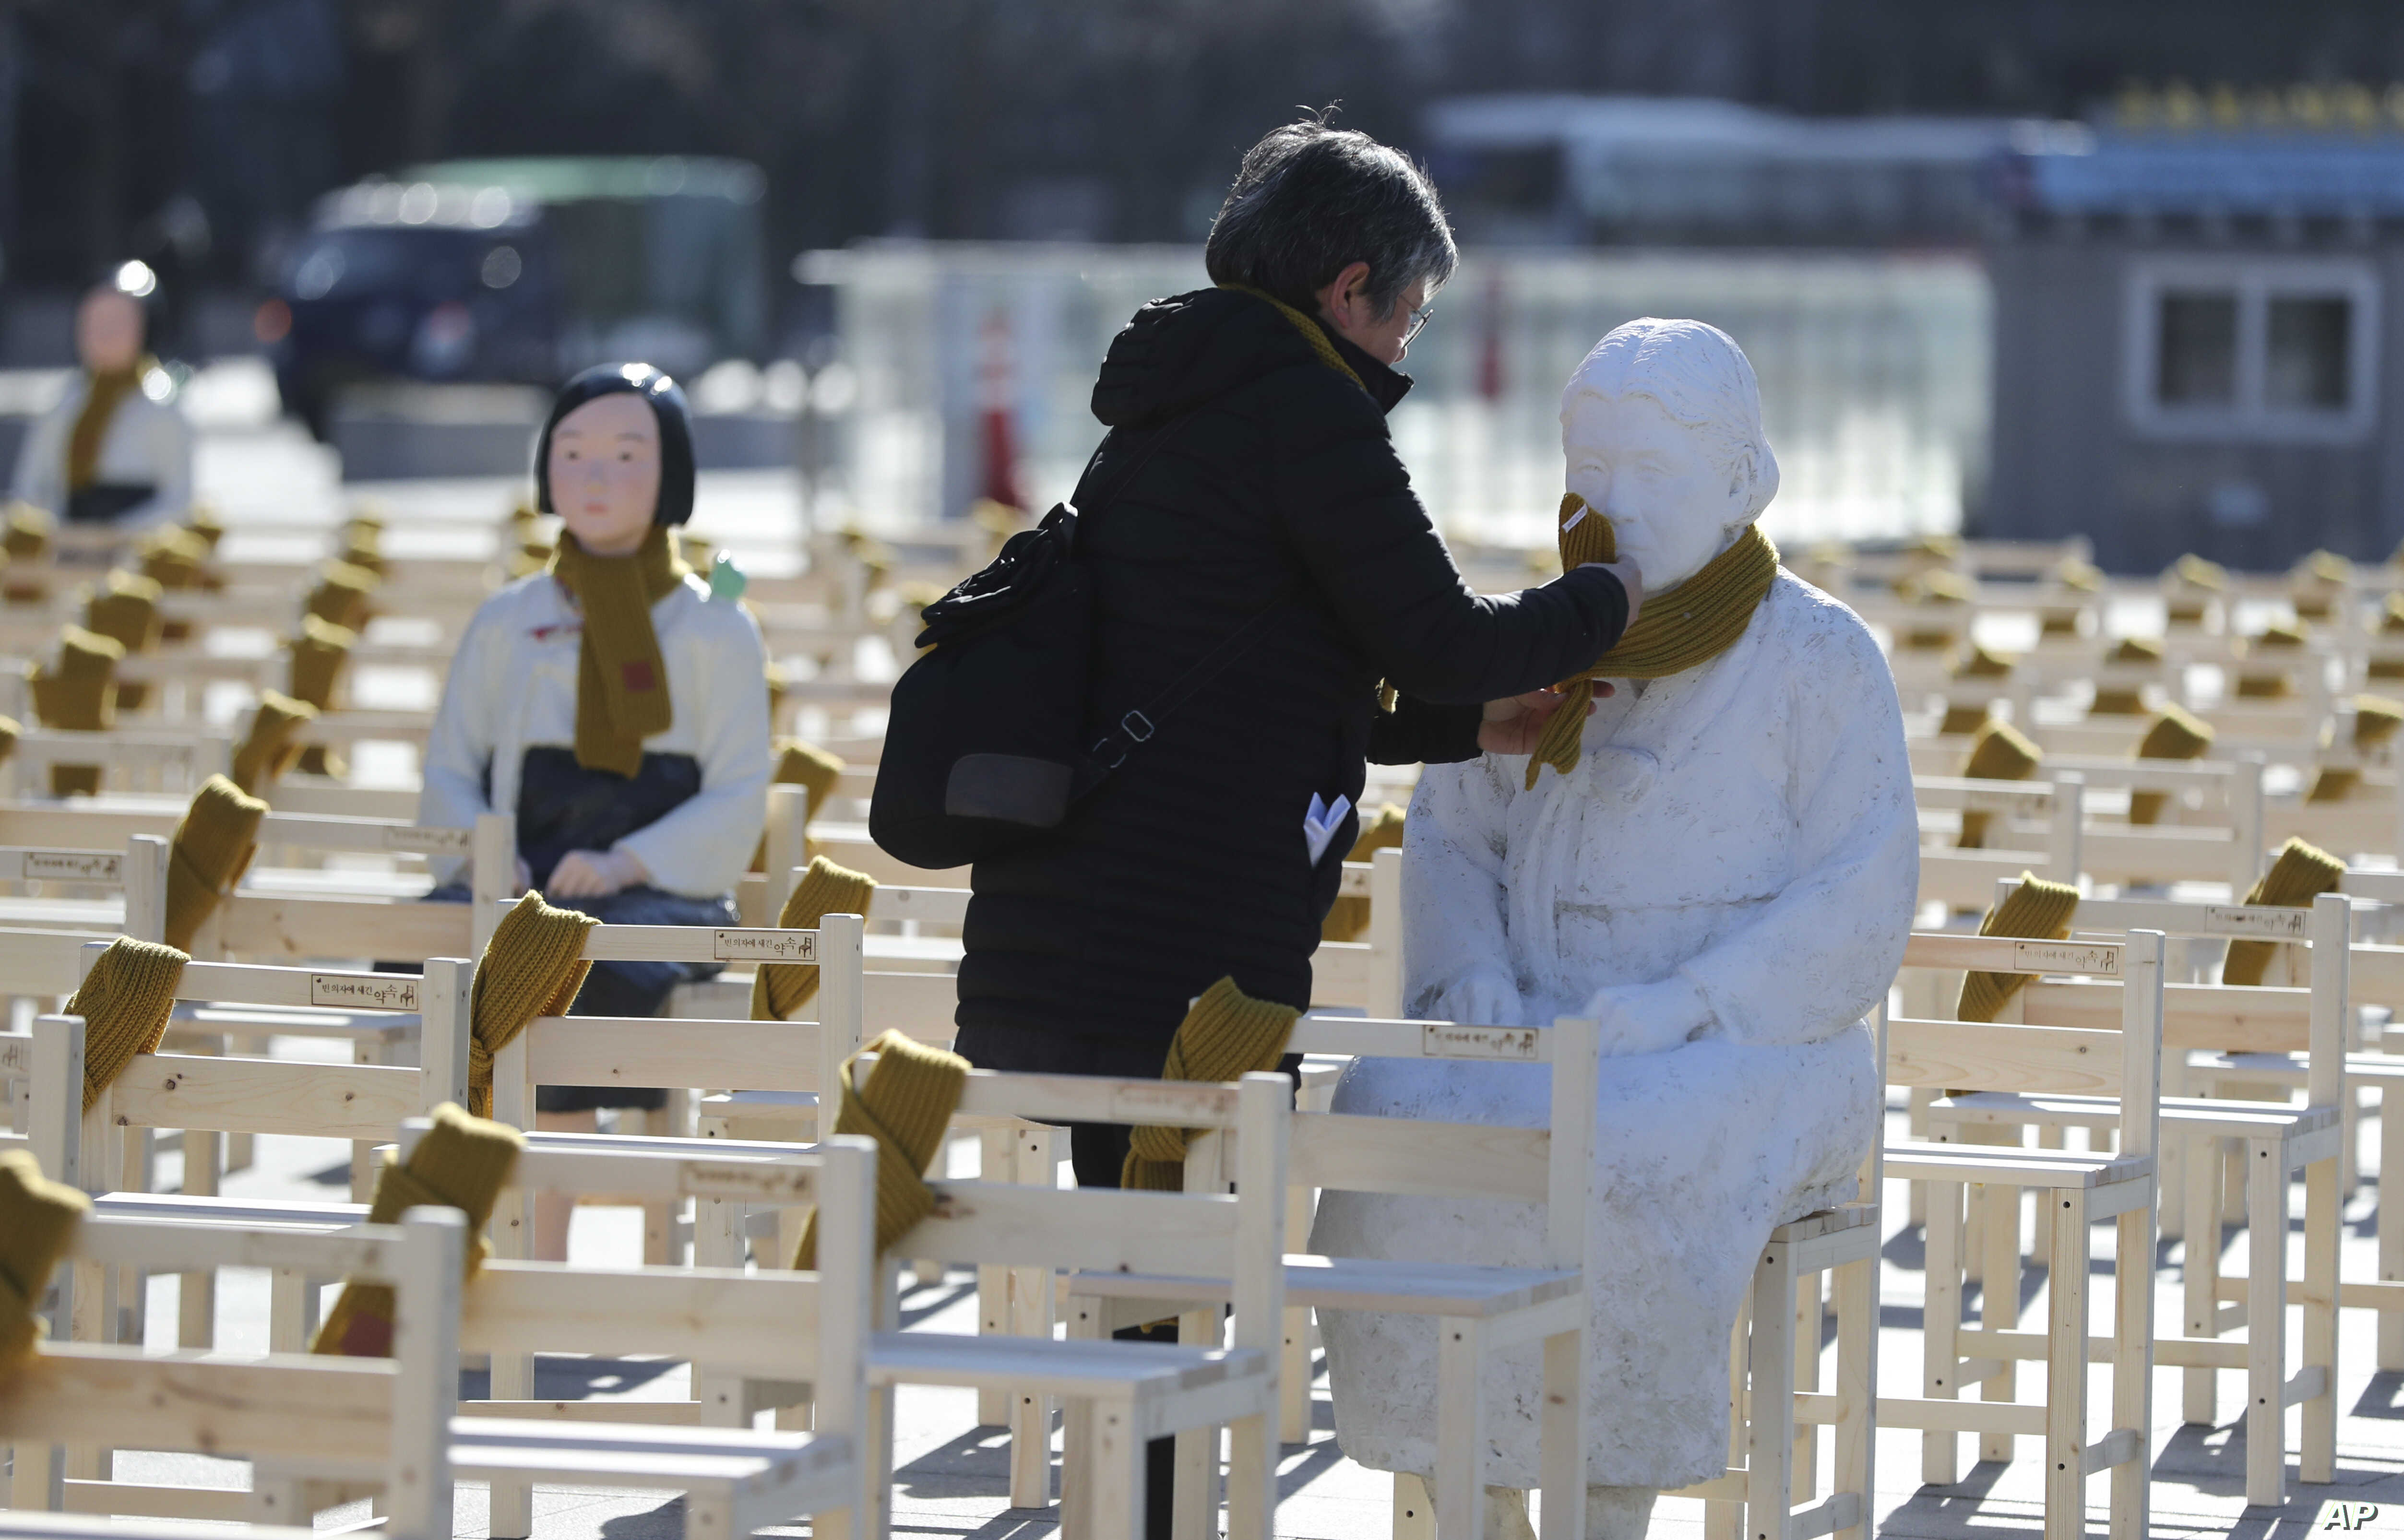 A woman puts a scarf on a statue of a comfort woman sitting in a installation of empty chairs symbolizing the victims in Seoul, South Korea, Dec. 27, 2017.